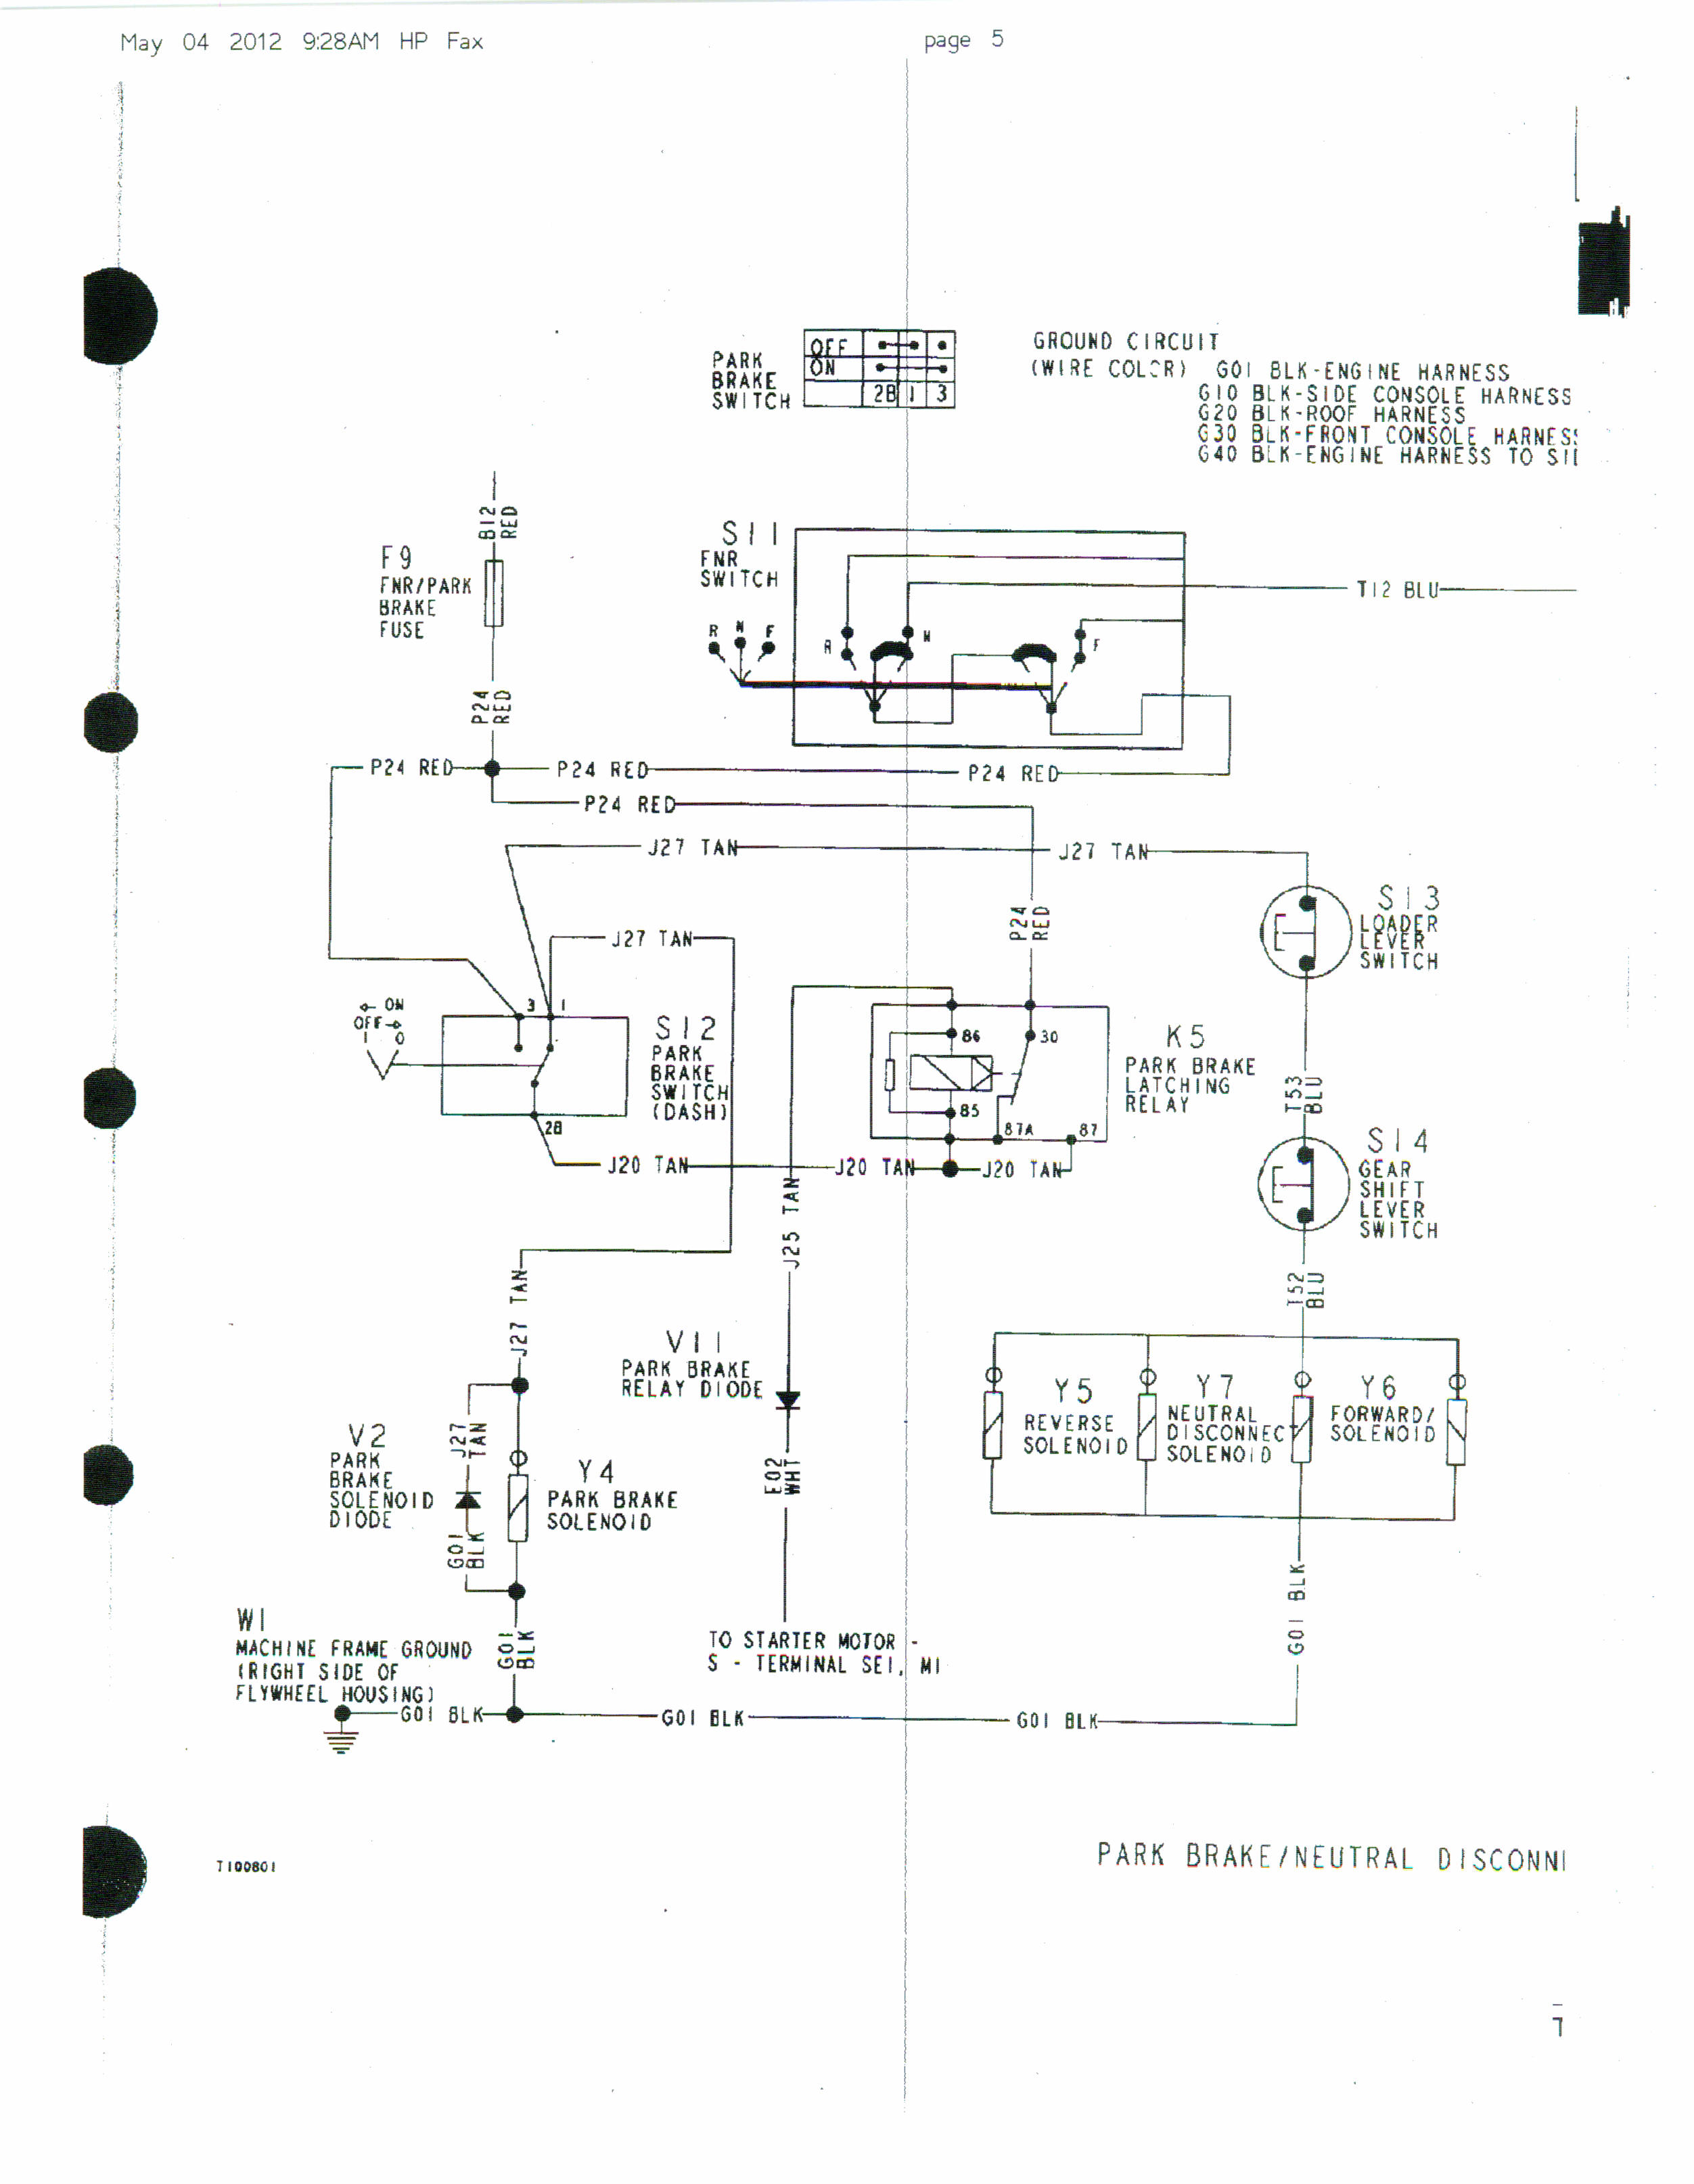 Kubota Fuse Box Location 24 Wiring Diagram Images 2012 05 004255 Jd310e5 John Deere Gator Diagrams At